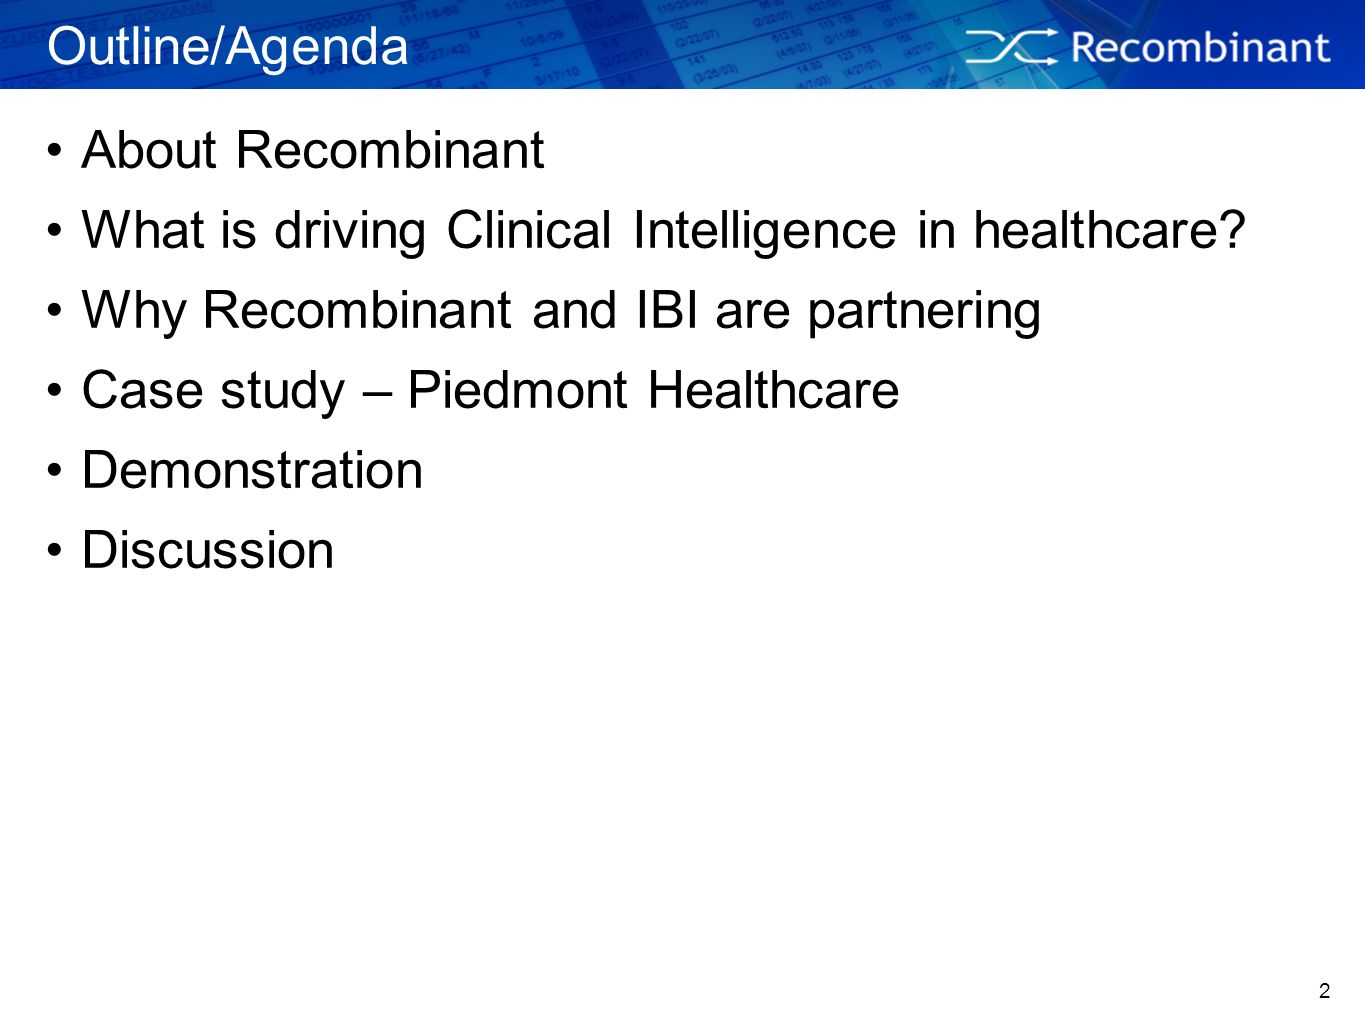 3 About Recombinant Best of breed software/analytics company focused 100% on secondary uses of clinical data Core Competencies Life science data warehousing & integration services Translational research & quality reporting solutions Data strategy, governance & compliance consulting Open Source implementations & extensions Core Values Pragmatism Effective Communication Trust